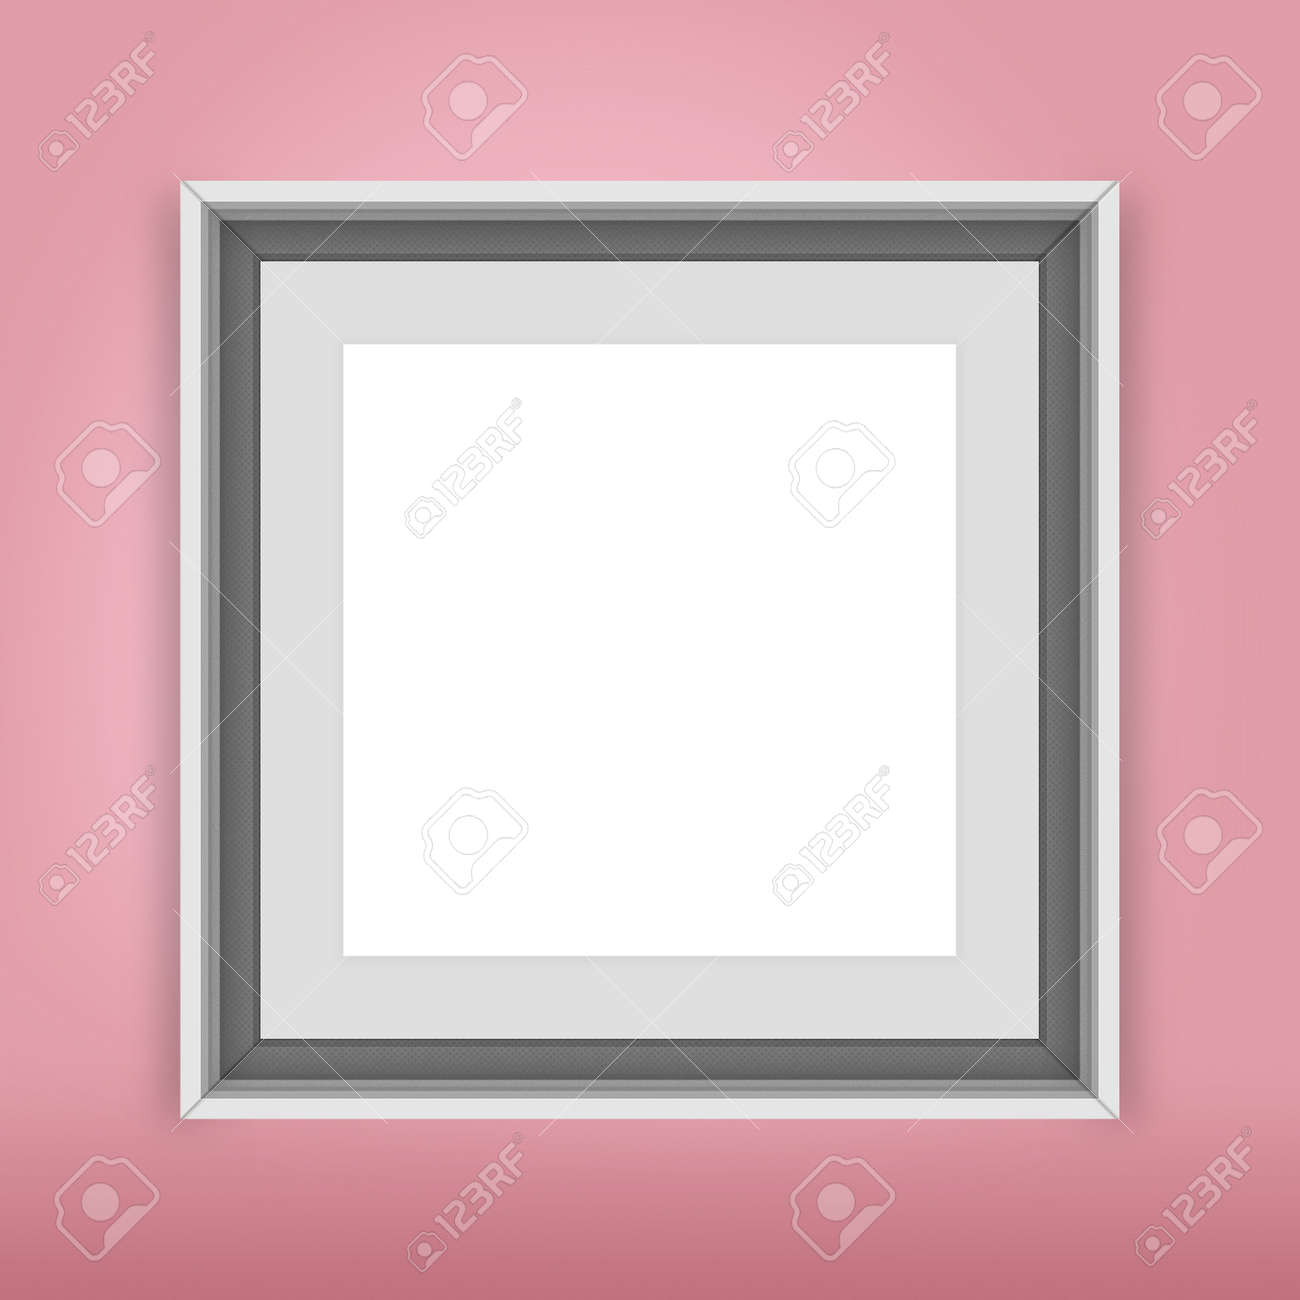 The Modern Frames On The Soft Pink Wall Stock Photo, Picture And ...